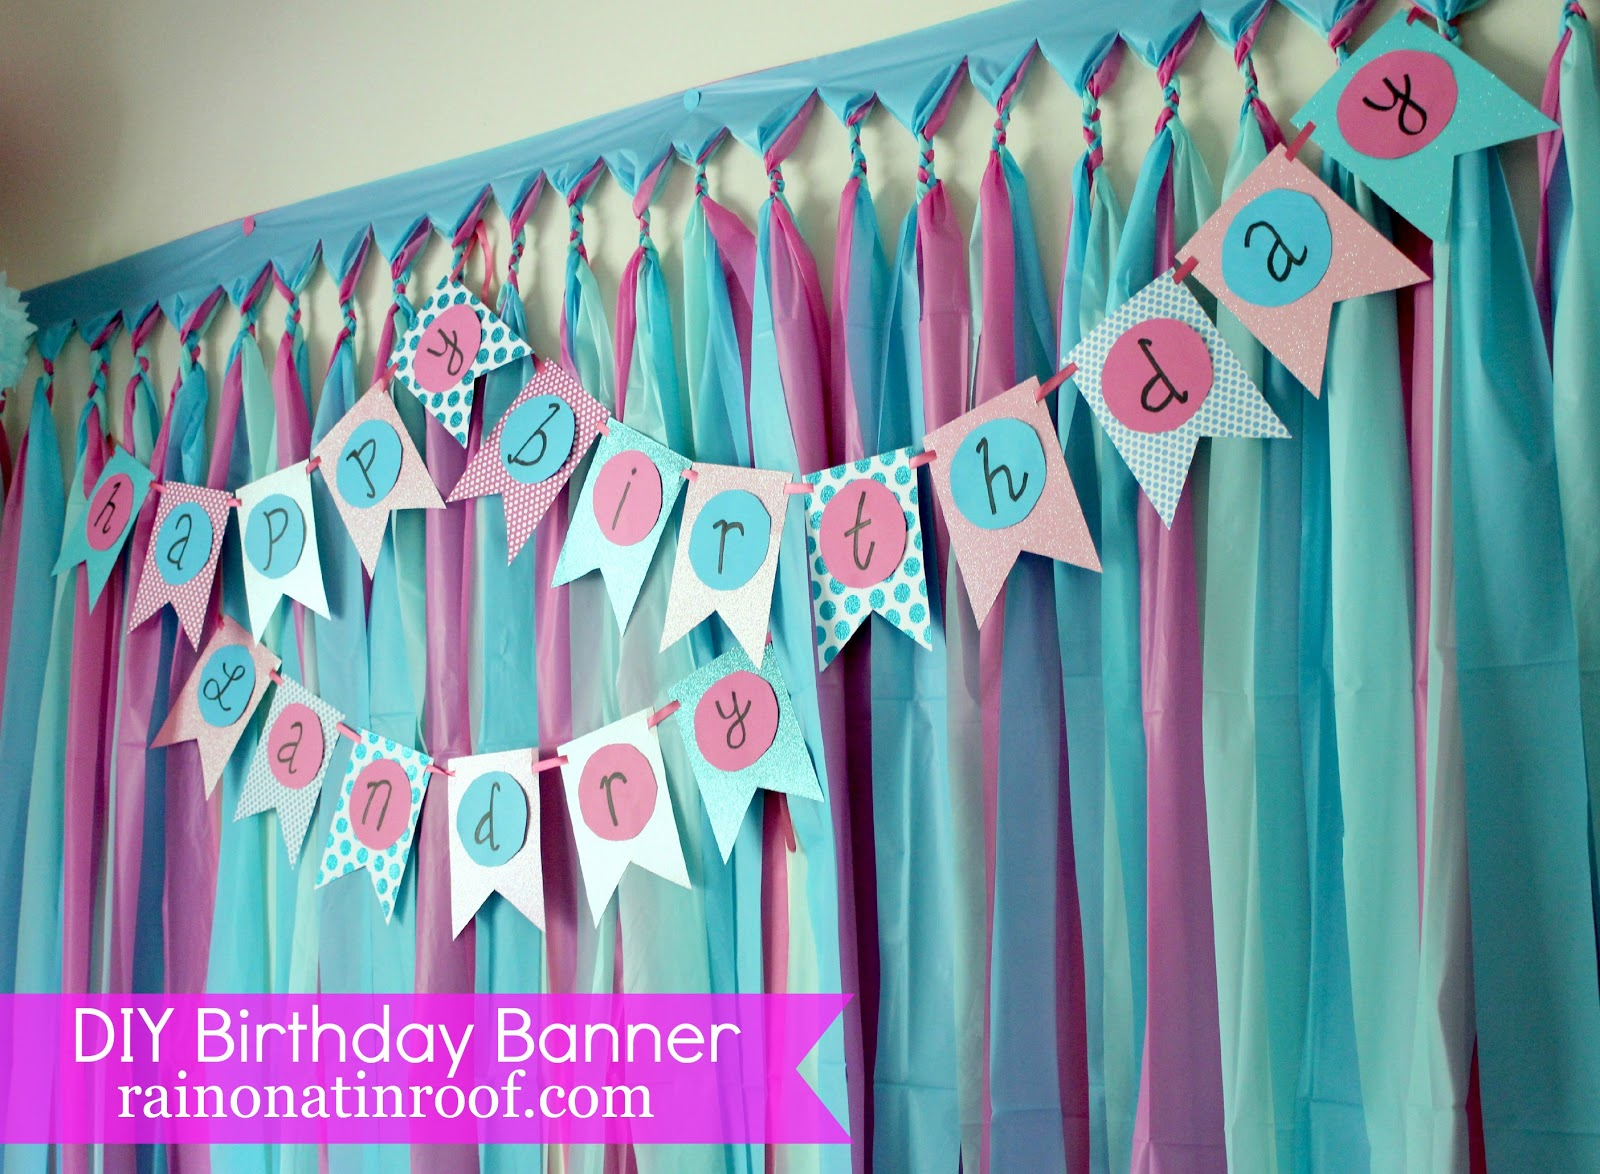 Easiest Ever DIY Birthday Banner {Part 2} - Rain on a Tin Roof